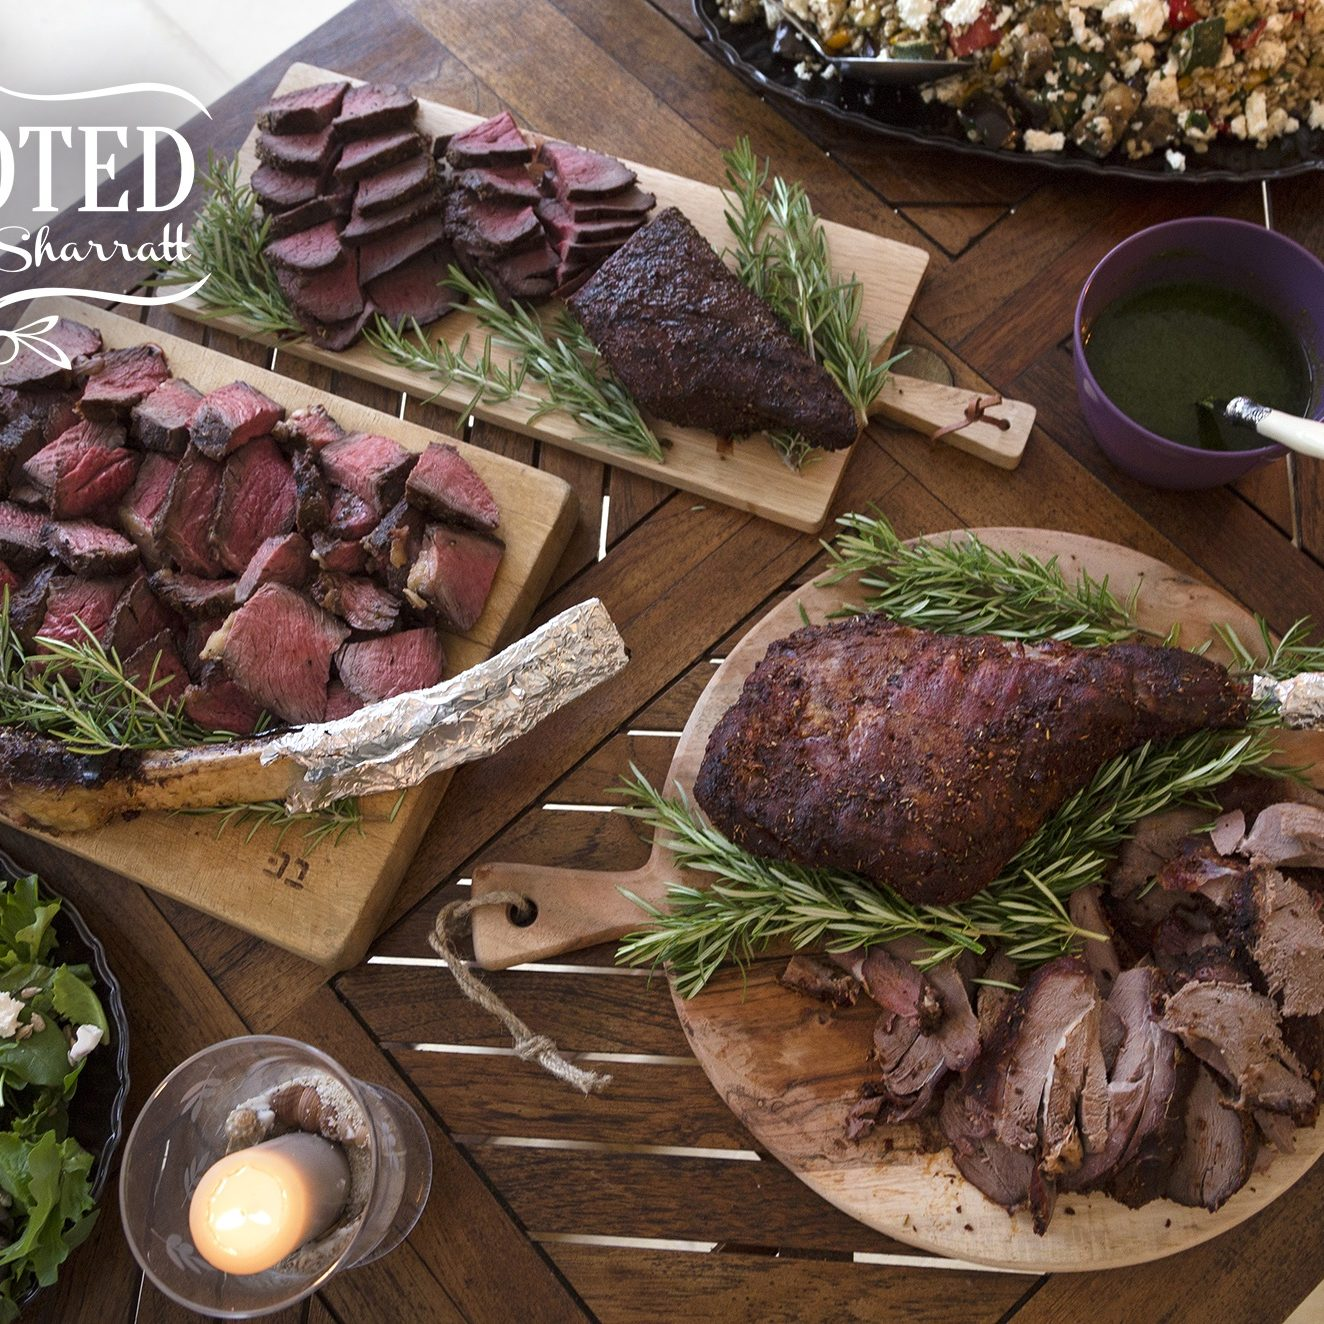 An impressive buffet of grilled meats including beef, boar and bison set out for a summer BBQ in France, as seen on Cooking Channel's UpRooted with Sarah Sharratt.